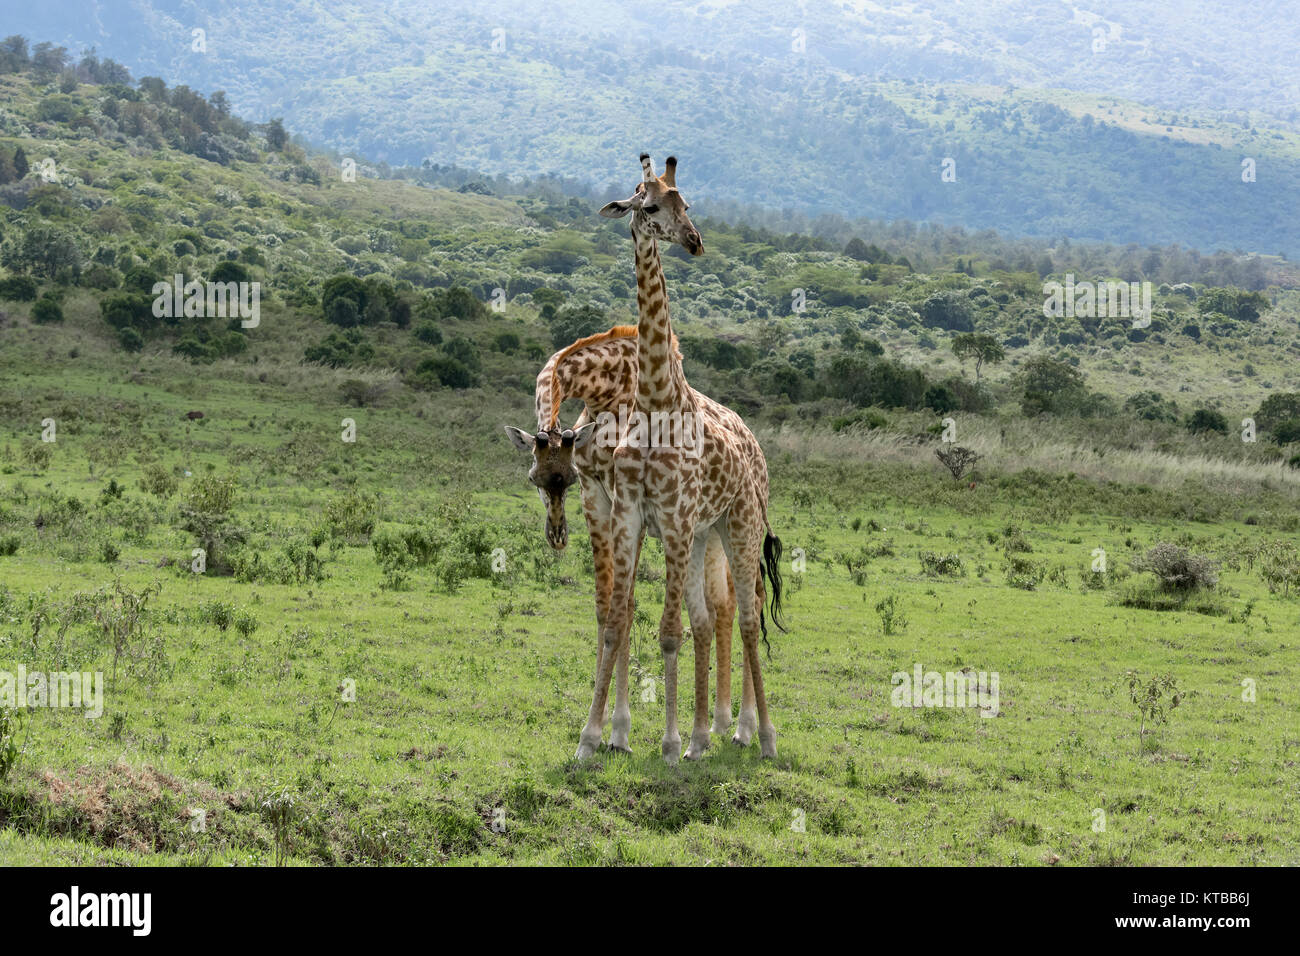 Two young Masai giraffes interacting together 5, near Mount Meru, Arusha NP, Tanzania - Stock Image